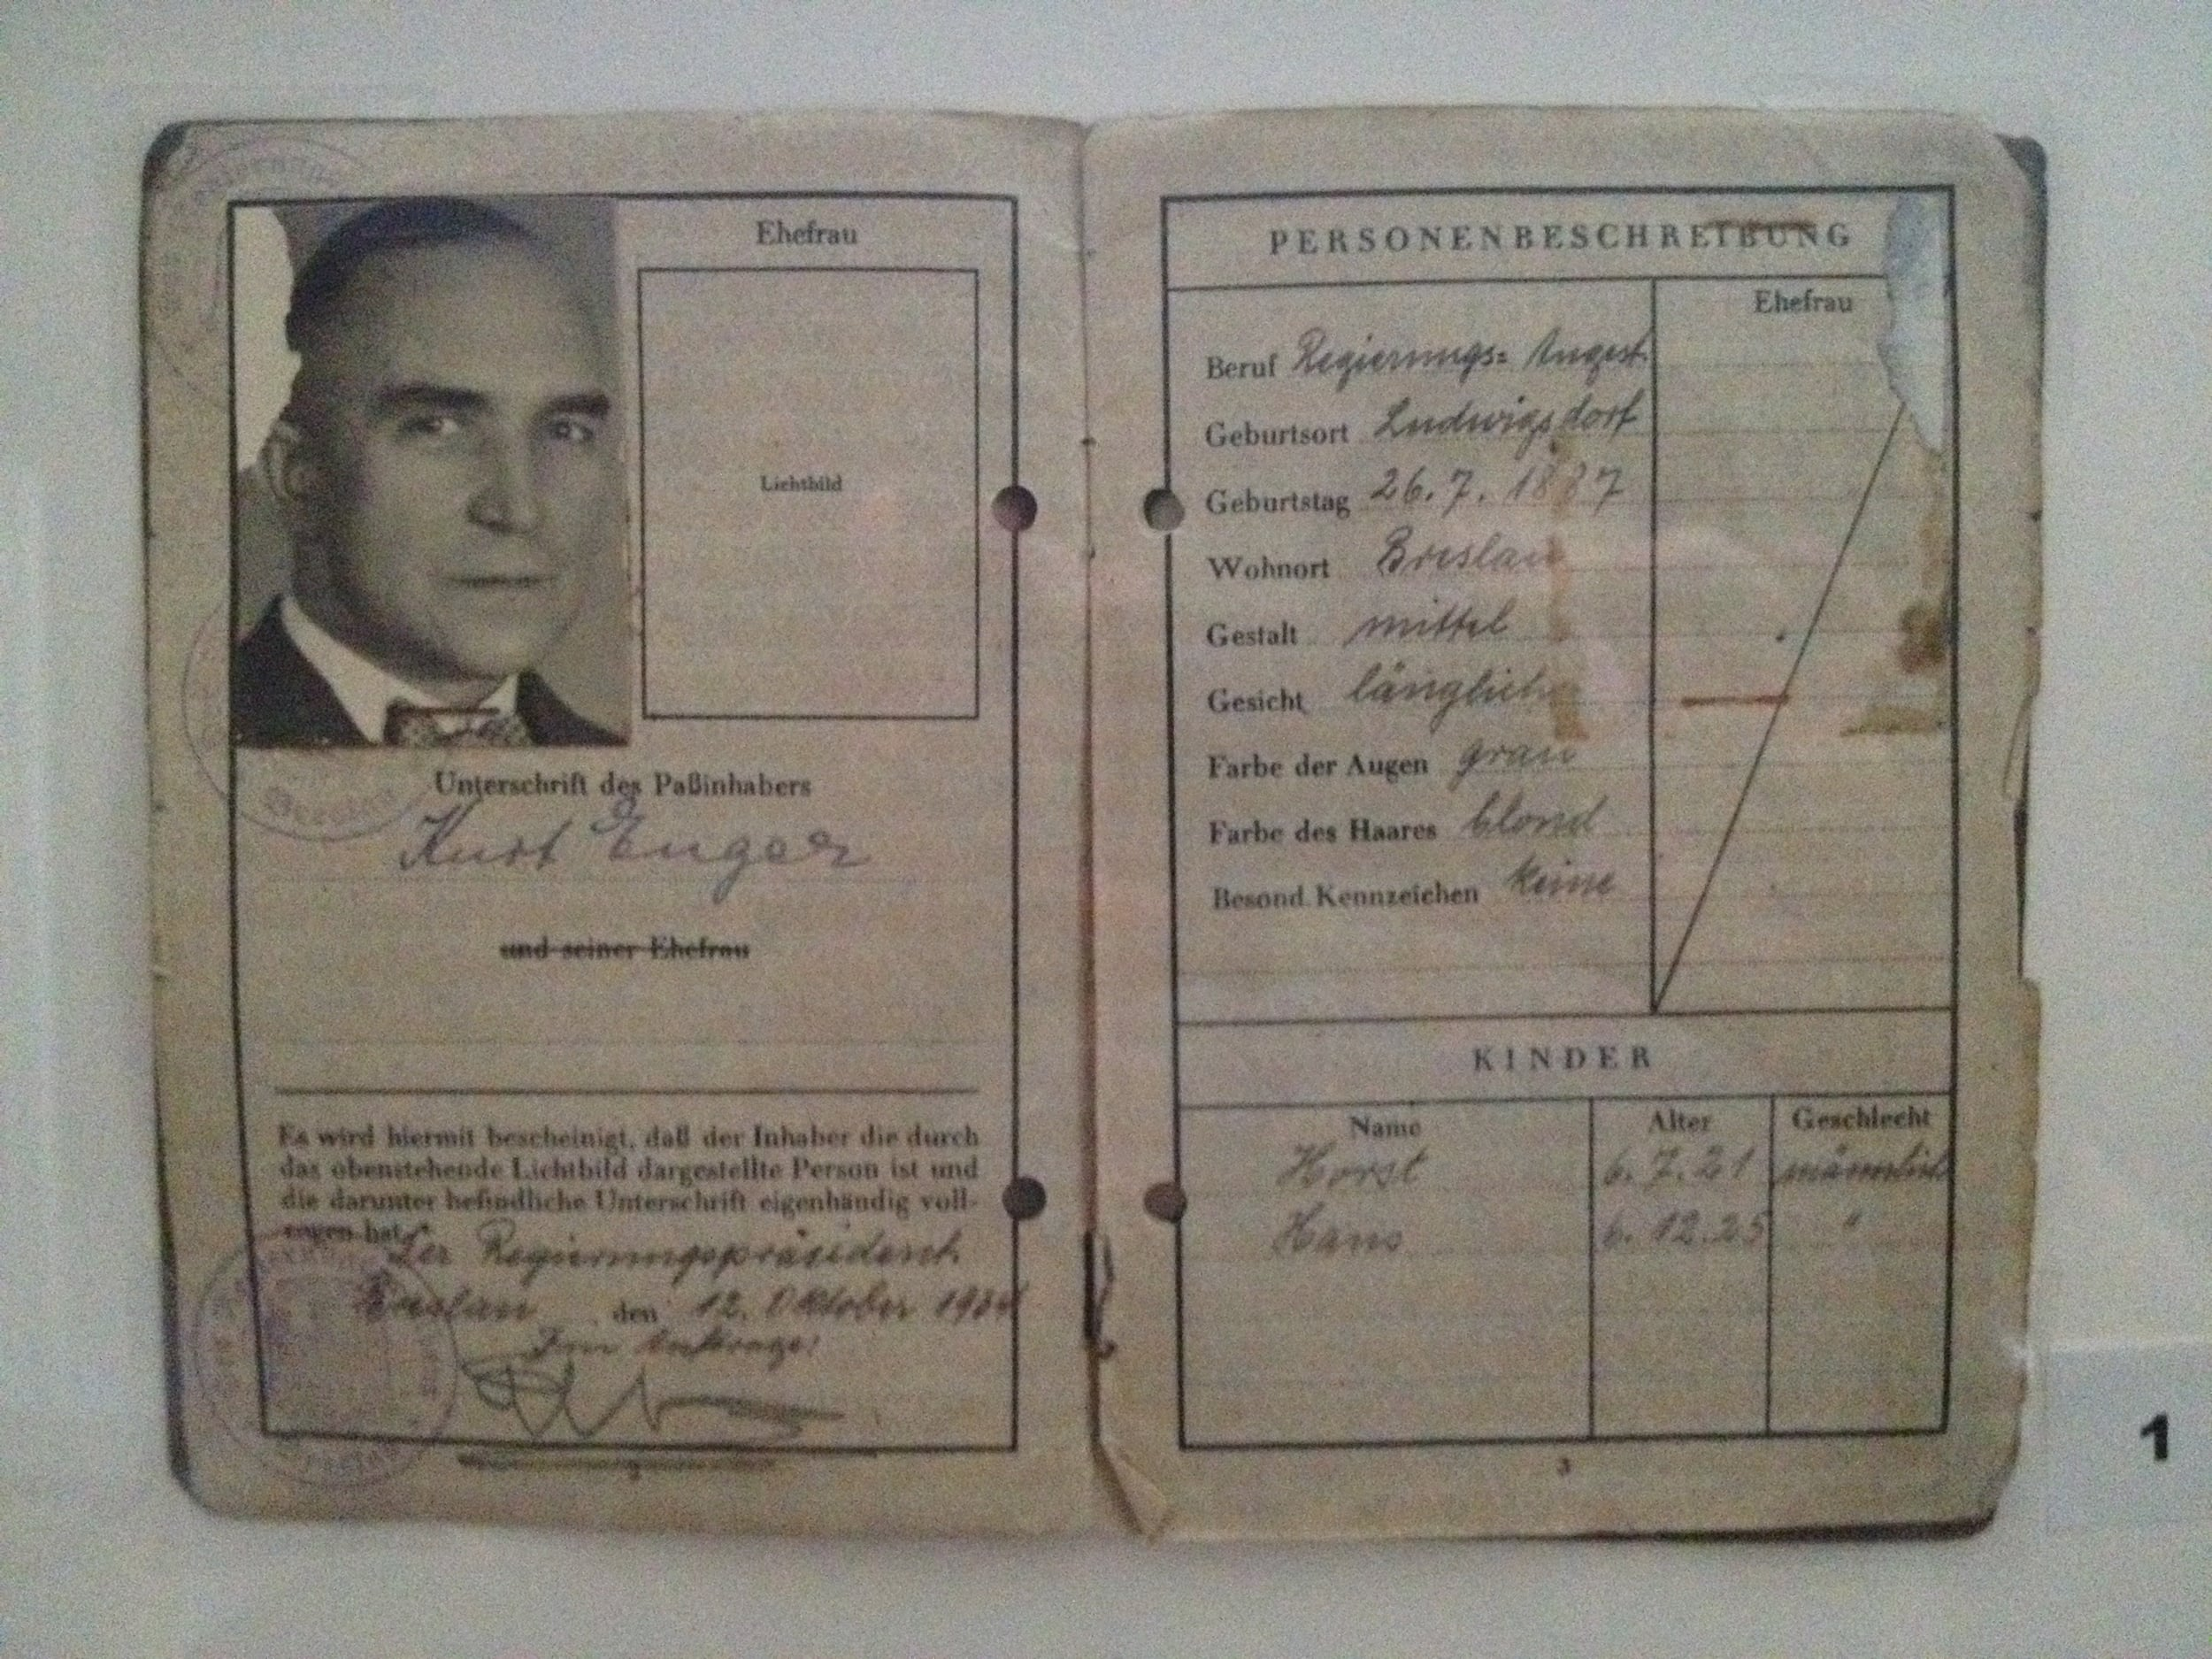 My grandfather's personal identification papers.